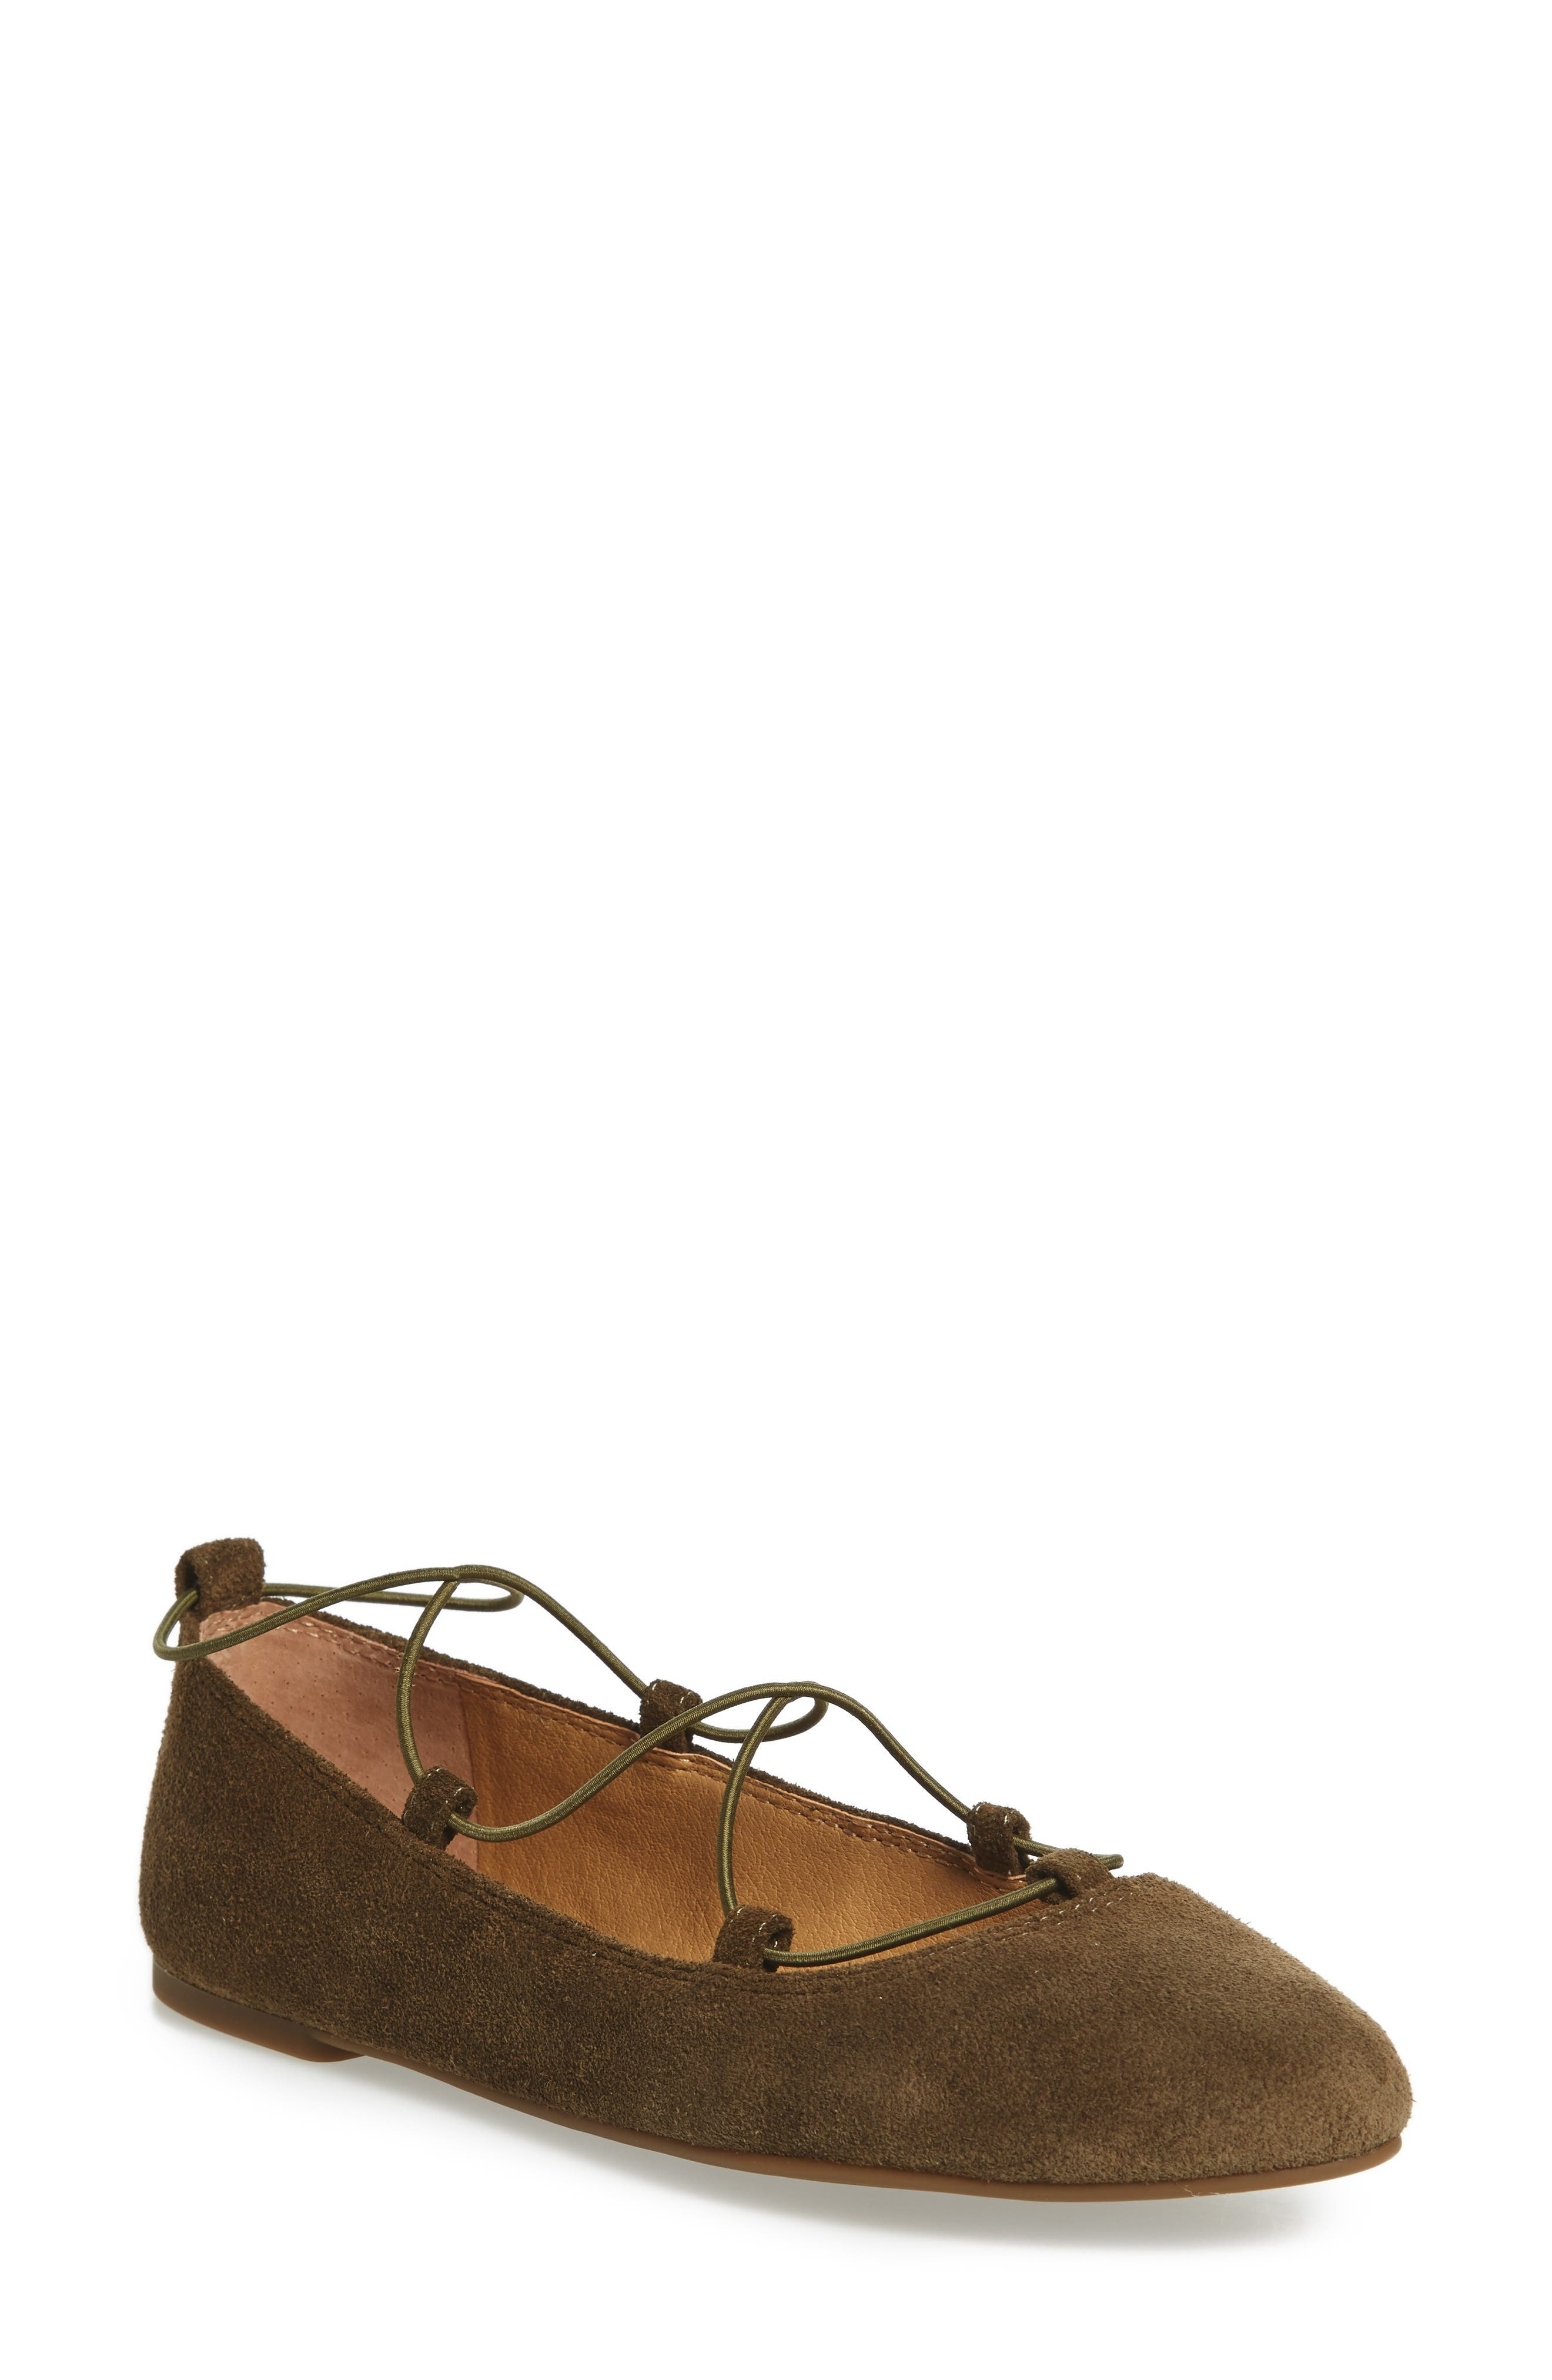 'Aviee' Lace-Up Flat,                             Main thumbnail 8, color,